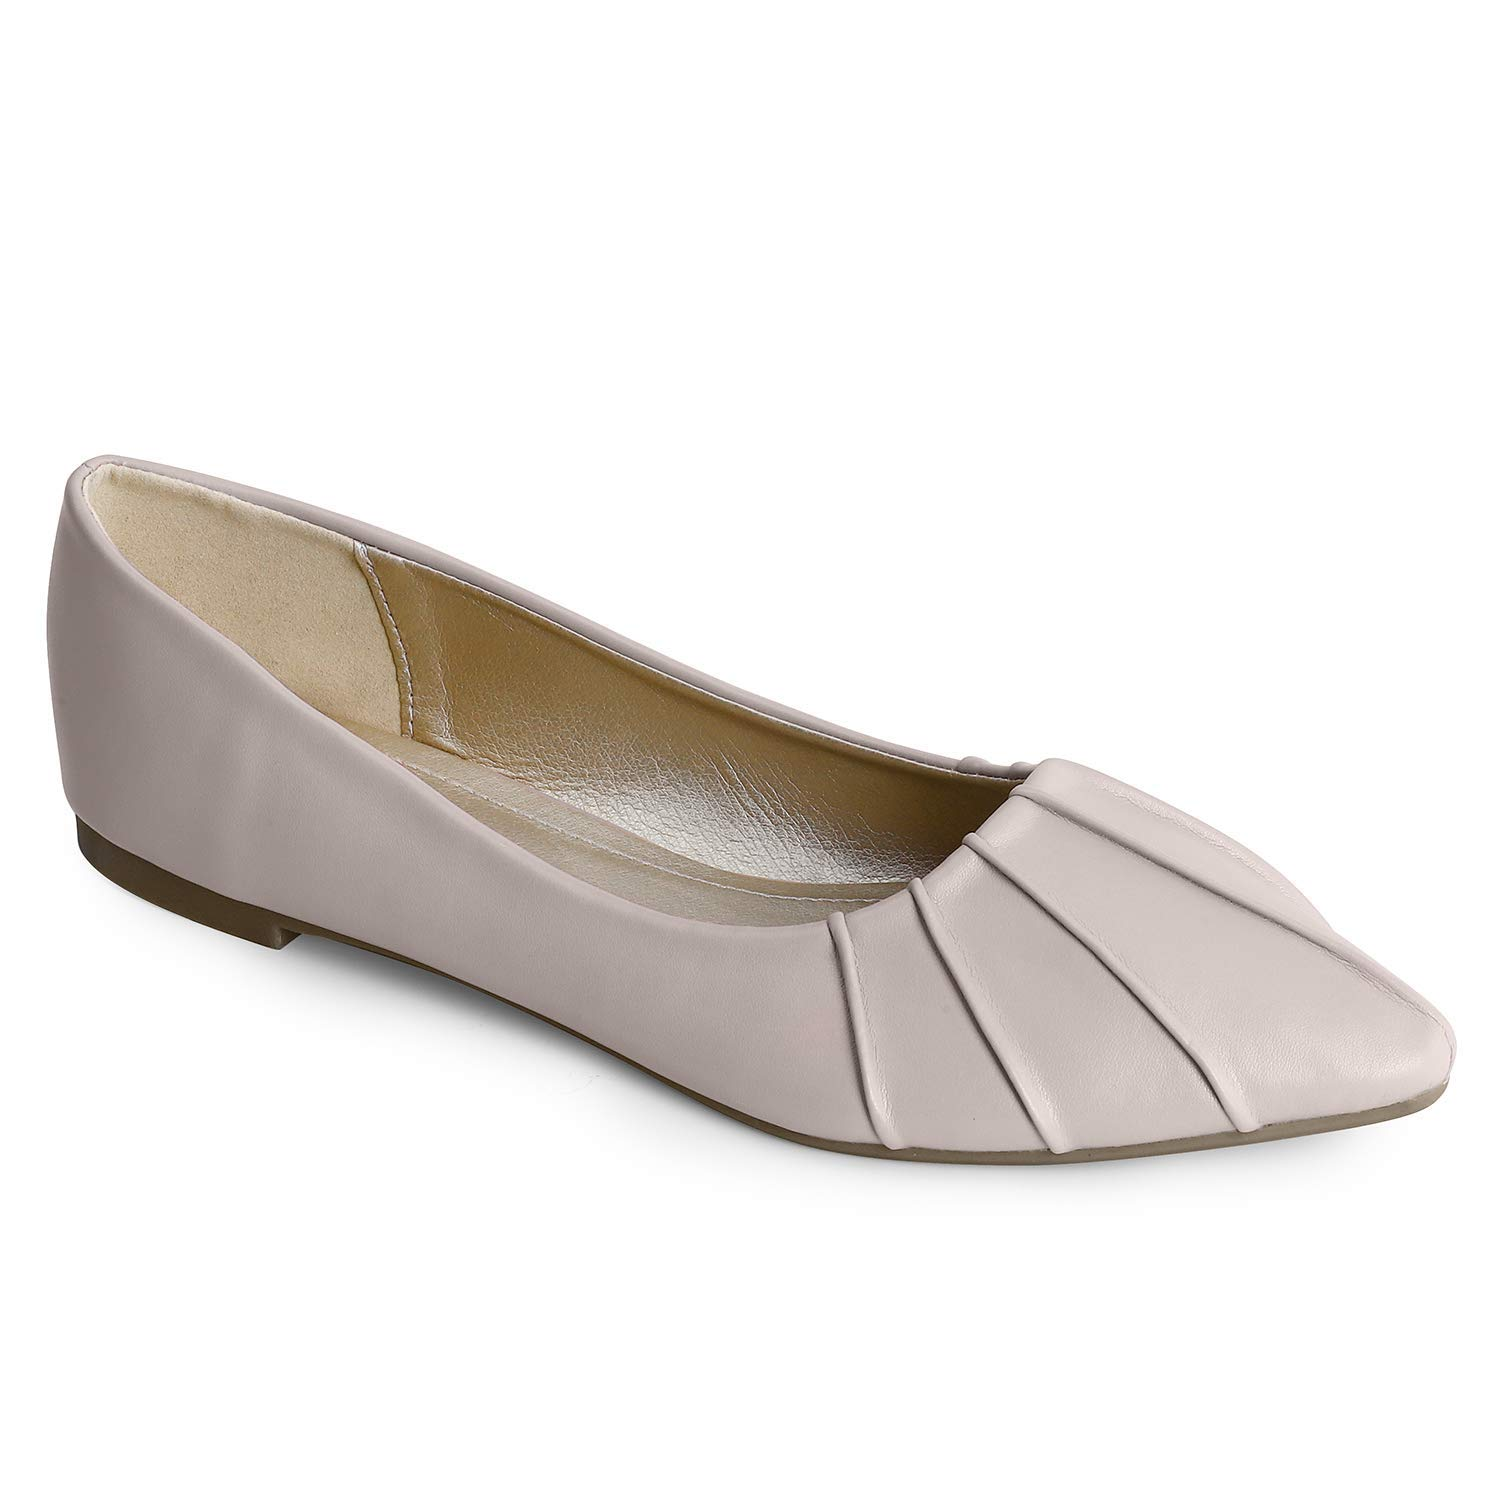 Trary Womens Pointed Toe and Bow Slip on Ballet Flat Shoes